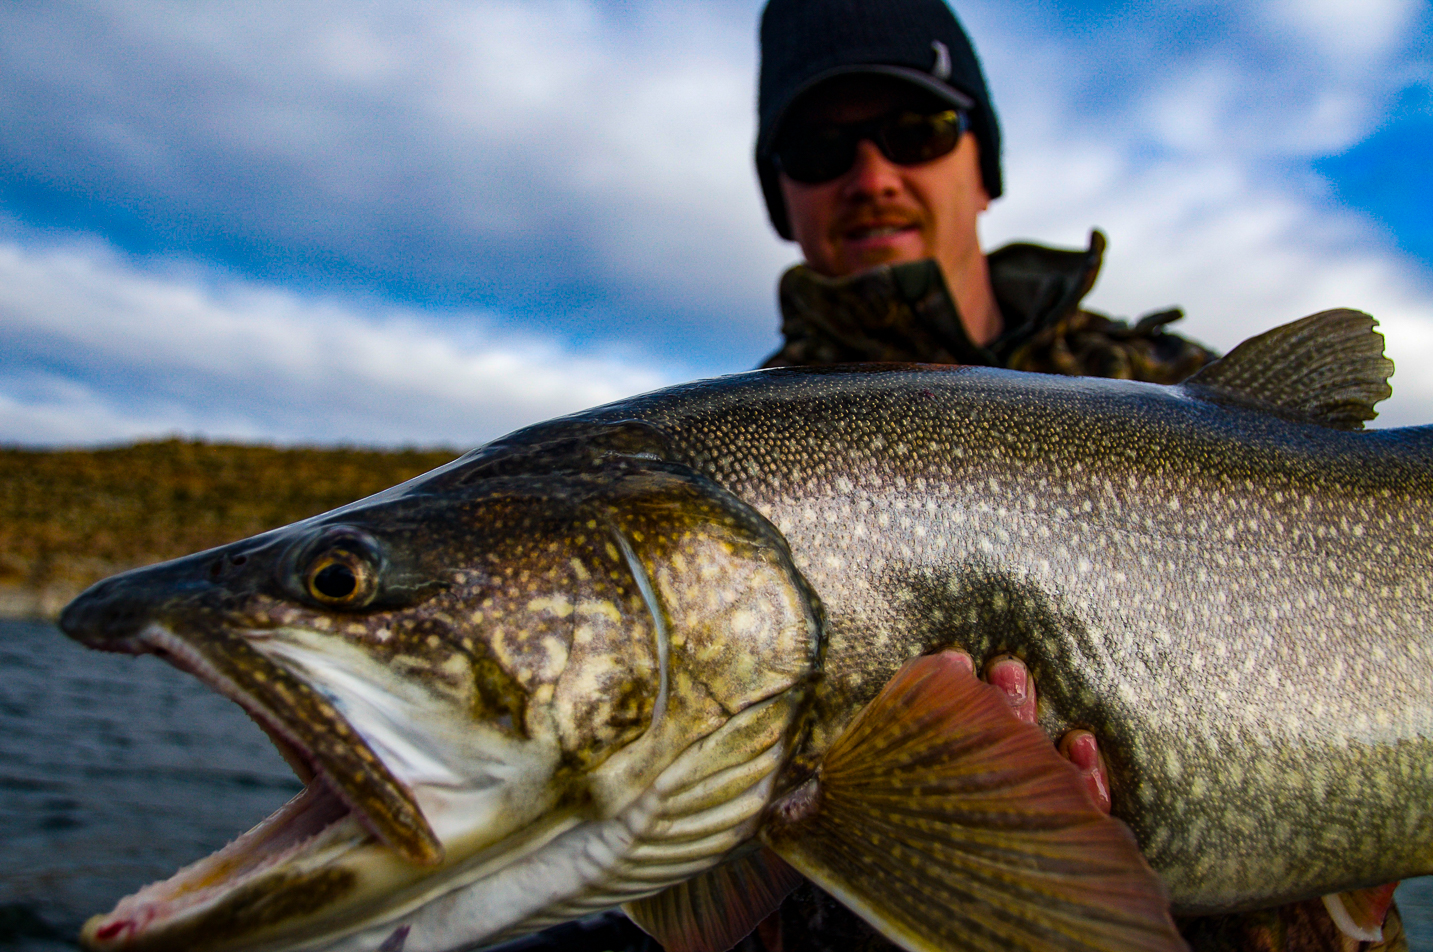 Flaming gorge and green river fishing reports for Flaming gorge fishing guides